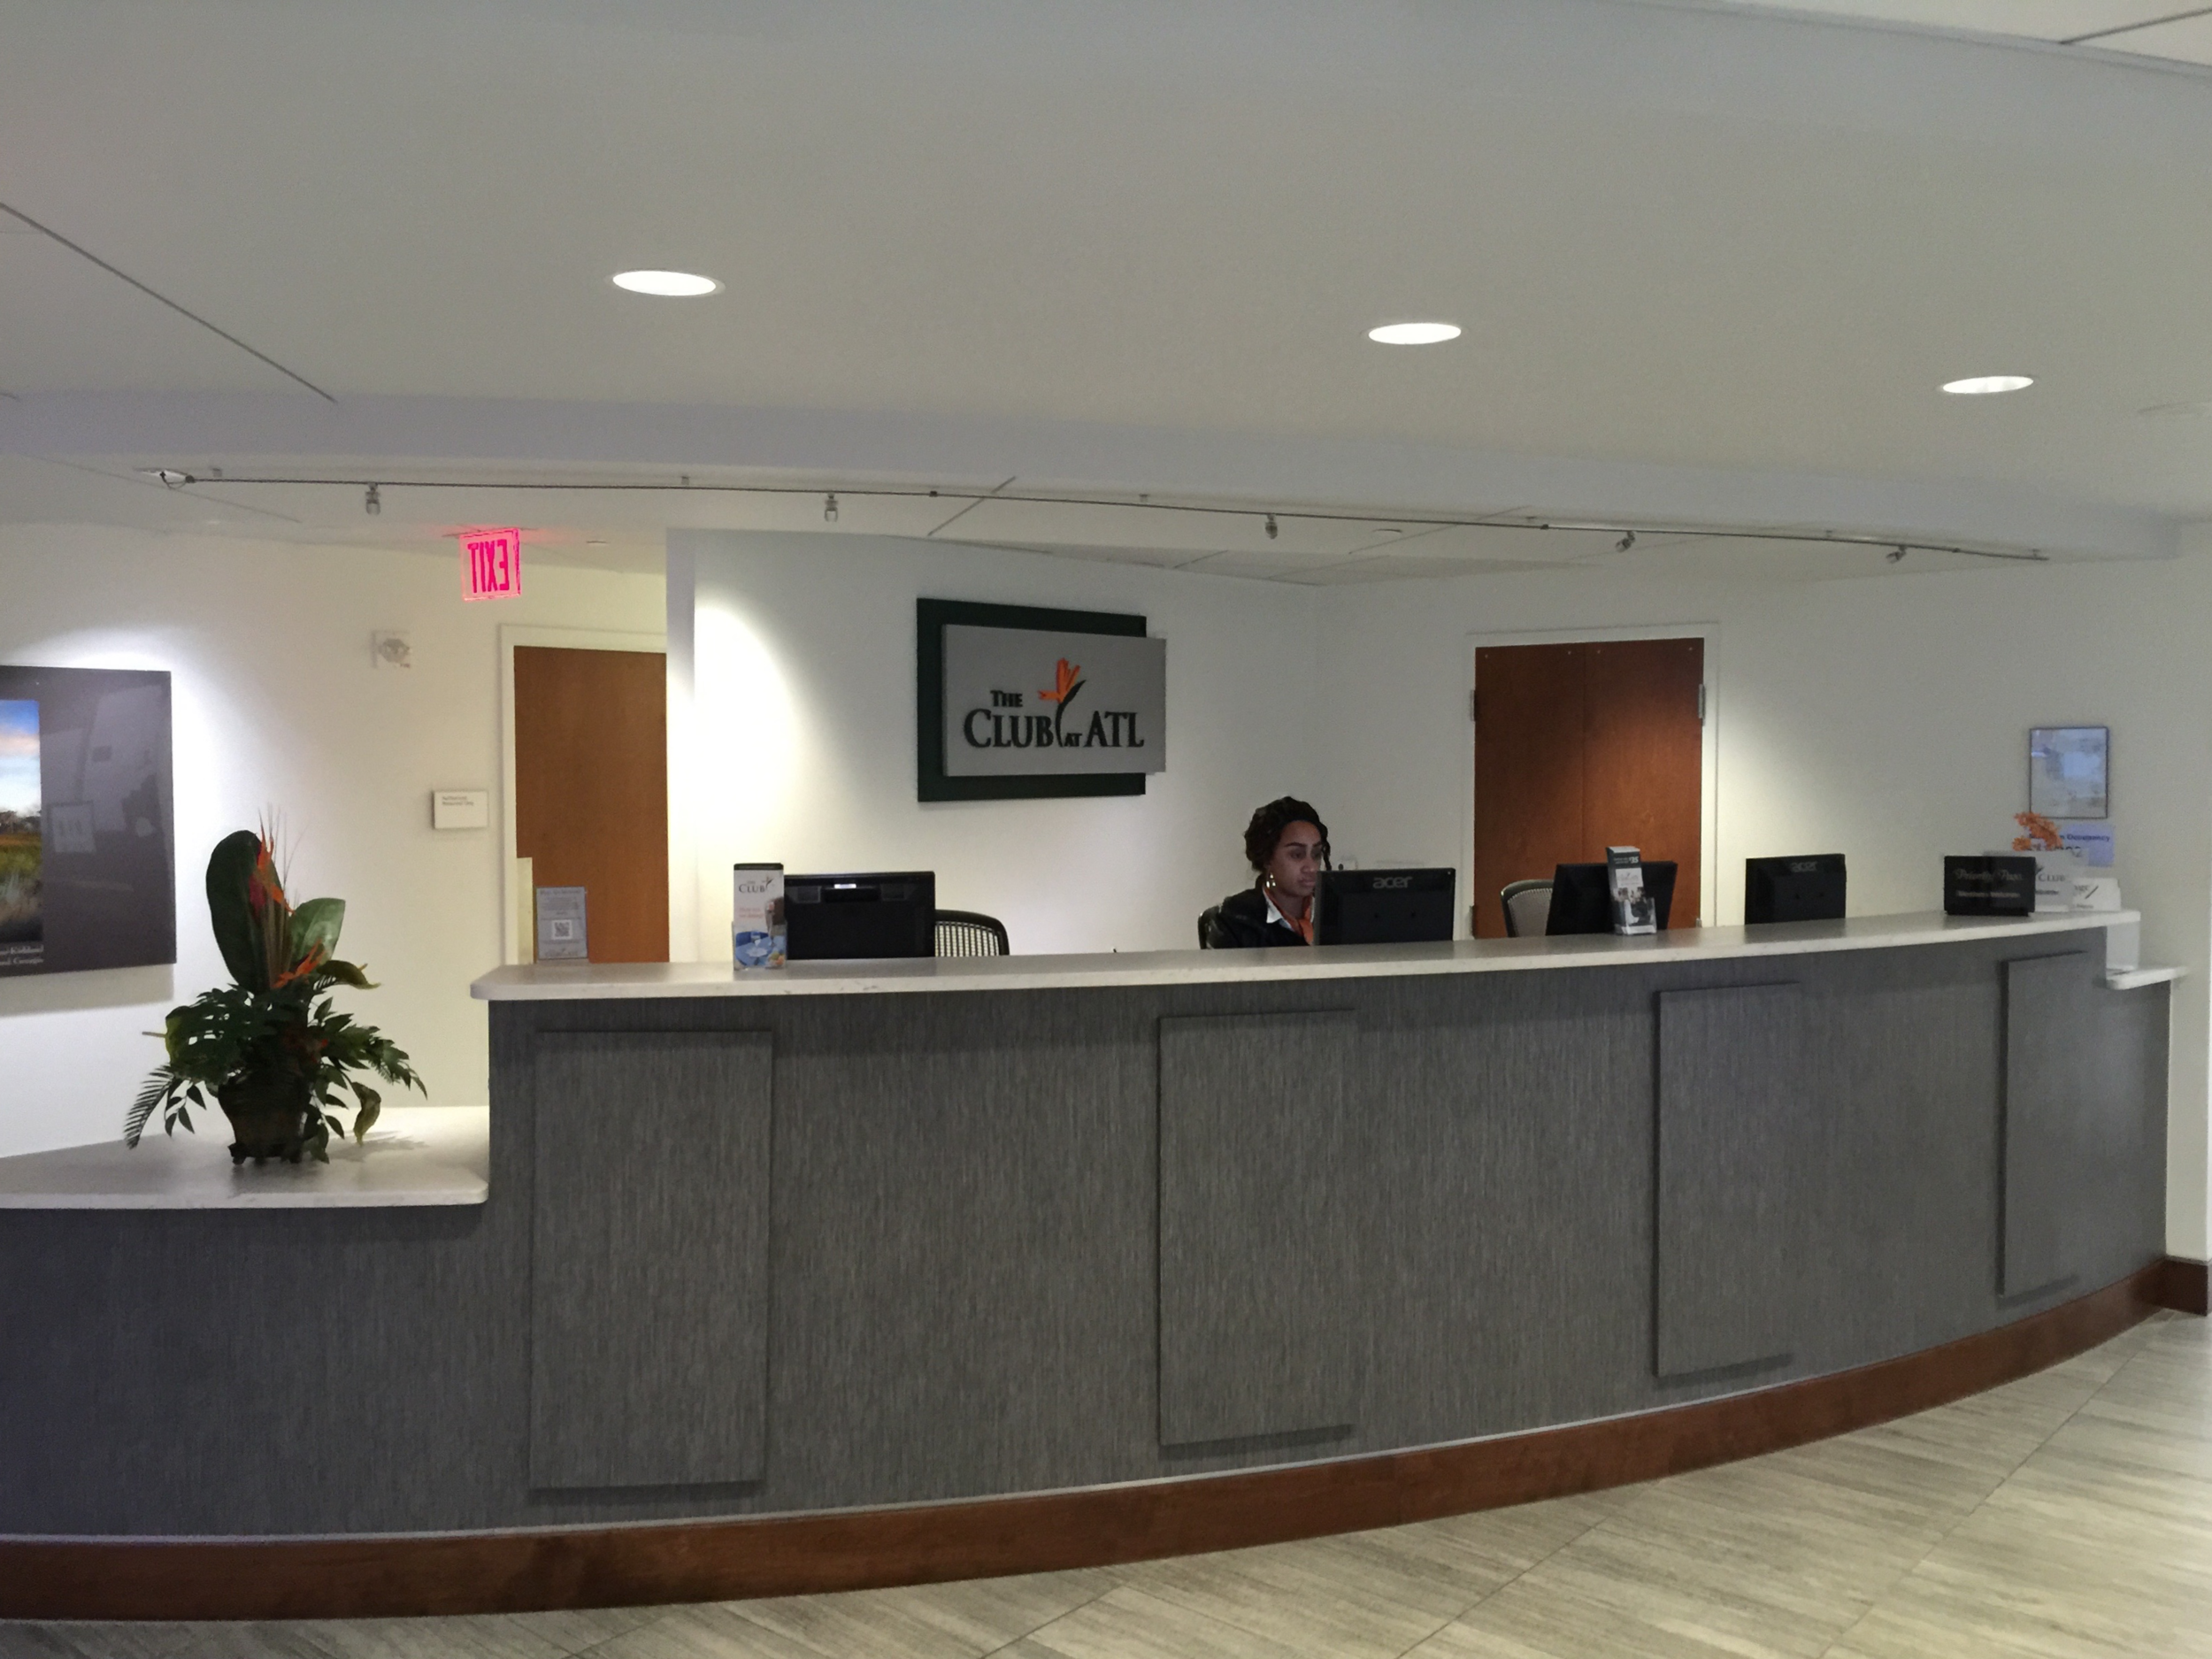 The Club at ATL front desk  (click to enlarge)